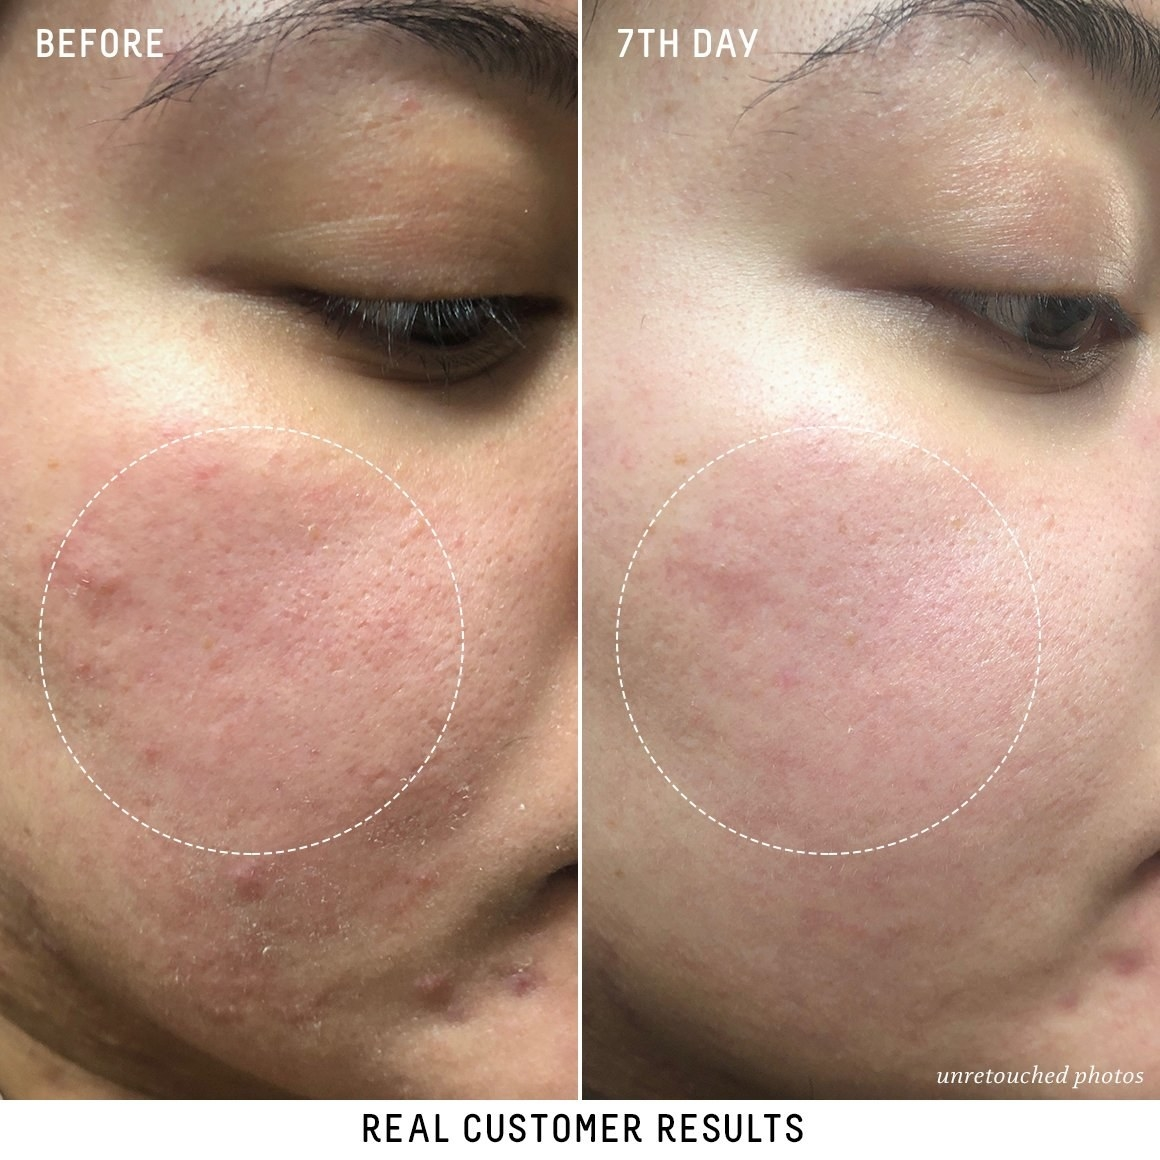 before image of customer's cheek with redness and bumps, and after image showing less redness and bumps